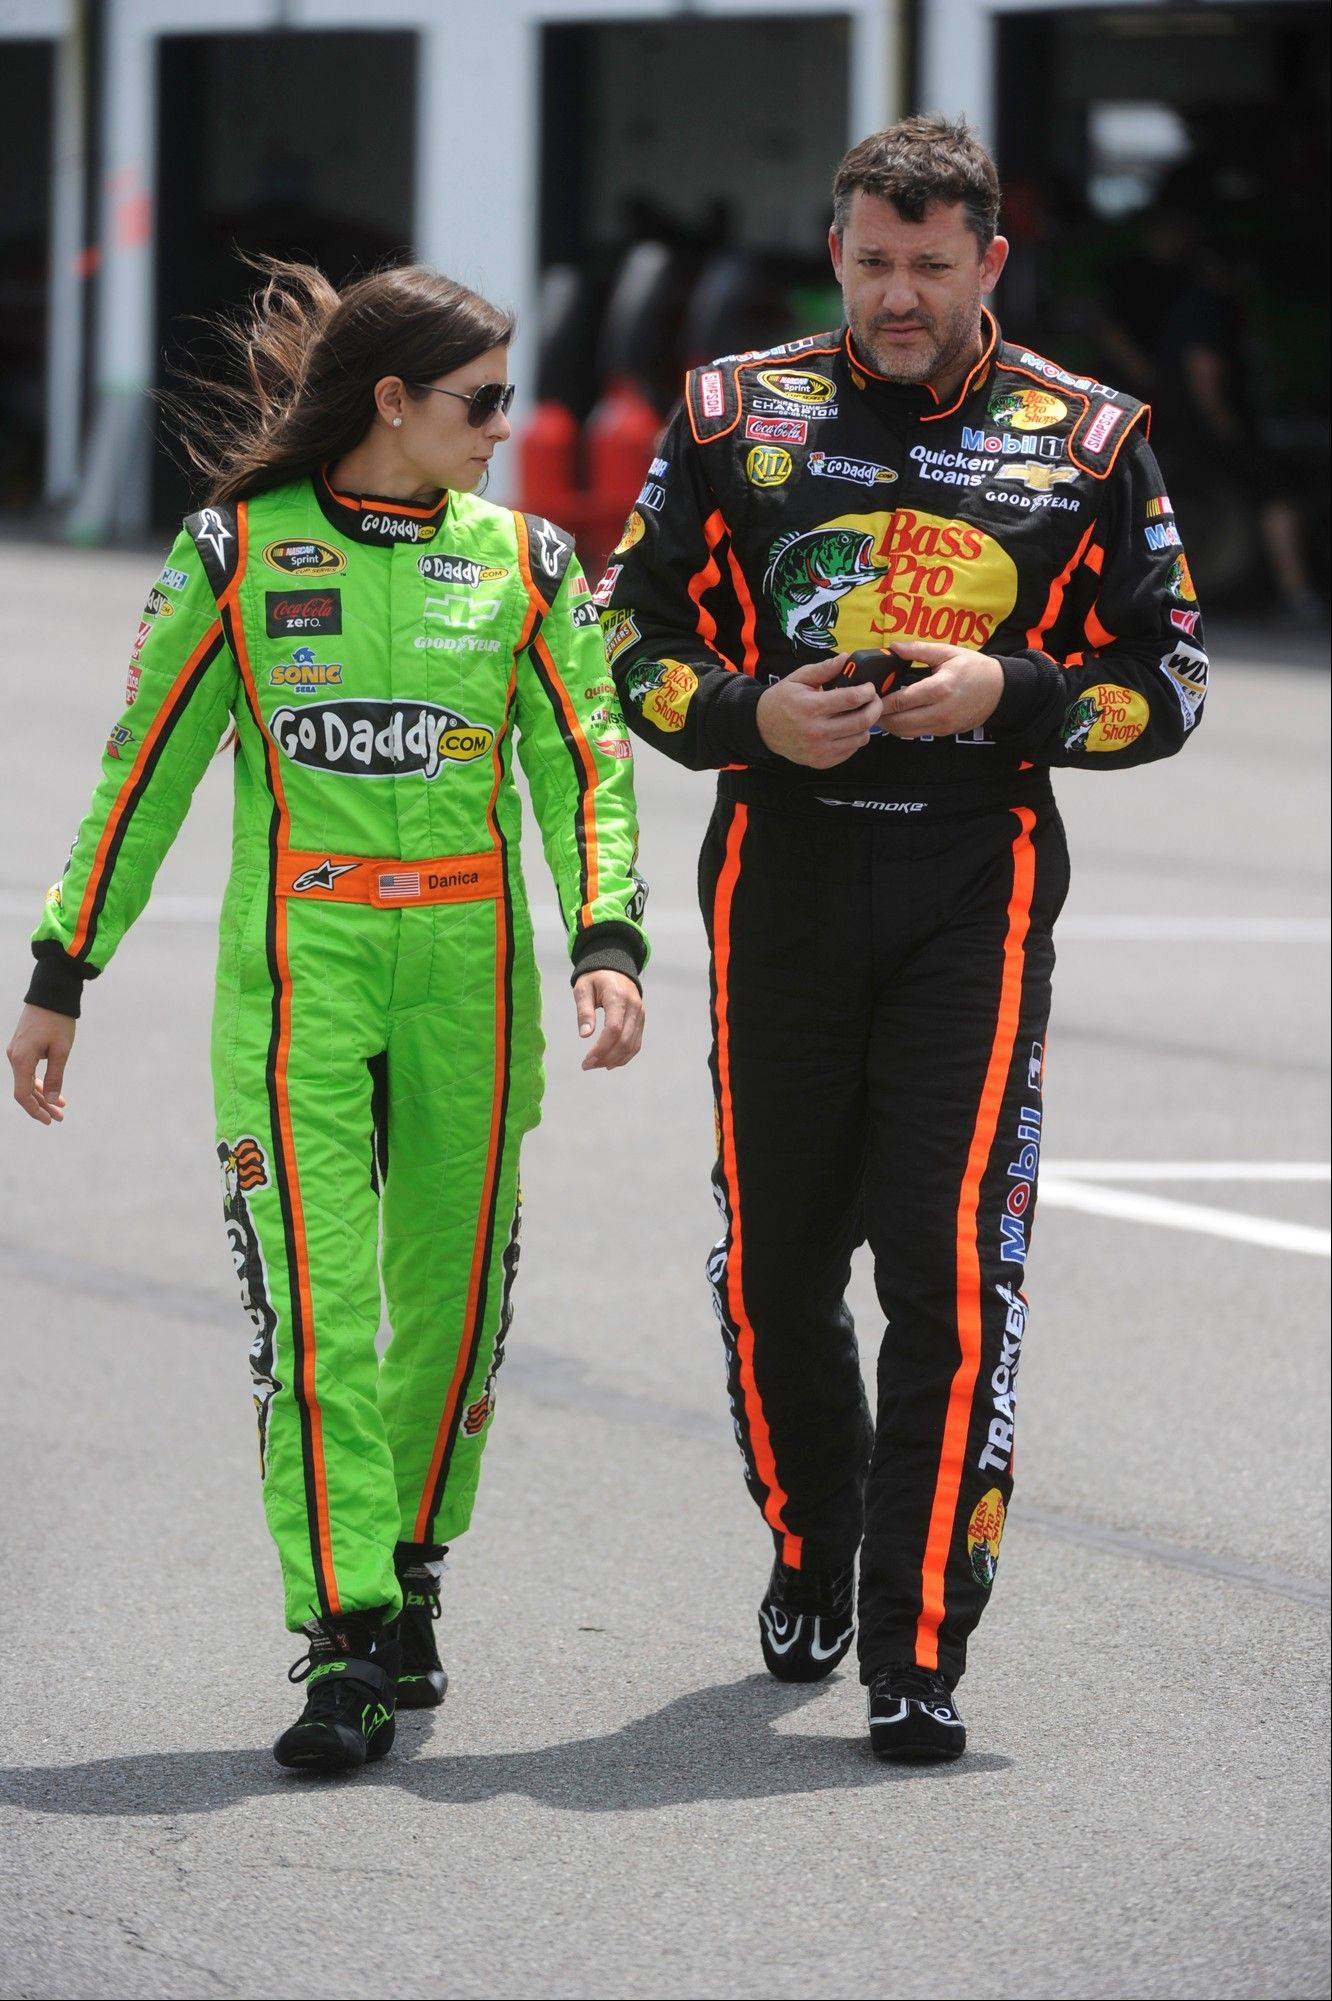 NASCAR drivers Danica Patrick, left, and Tony Stewart leave the garages at Pocono Raceway in Long Pond, Pa., after tire testing at the track on Wednesday, May 29, 2013. (AP Photo/Pocono Record, Keith R. Stevenson)